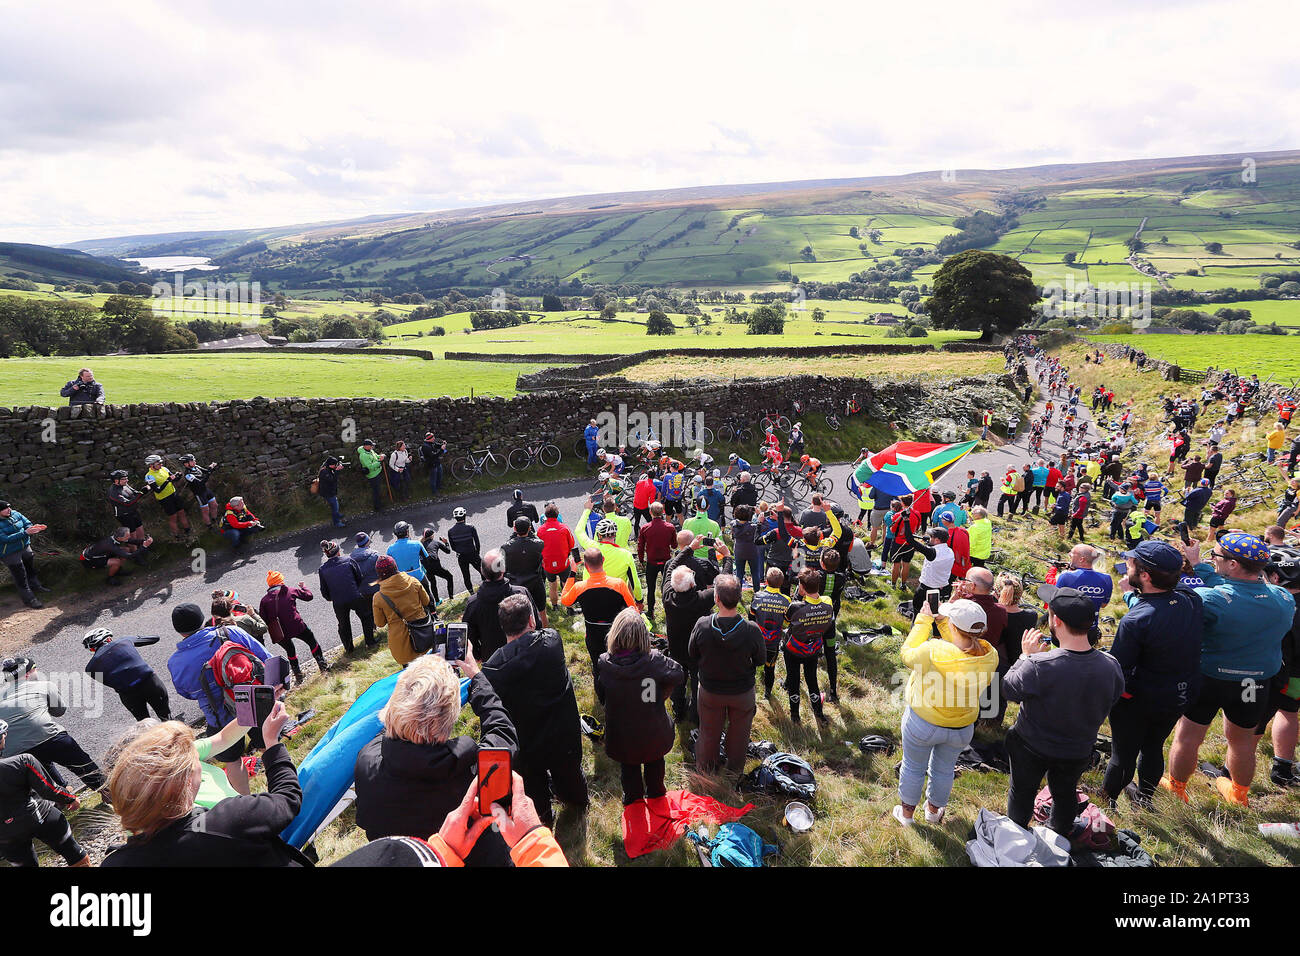 Harrogate, UK. 28th Sep, 2019. HARROGATE, 29-09-2019, cycling, wk wielrennen, worldchampionships, women, The peloton in pursuit of Annemiek van Vleuten Credit: Pro Shots/Alamy Live News Stock Photo